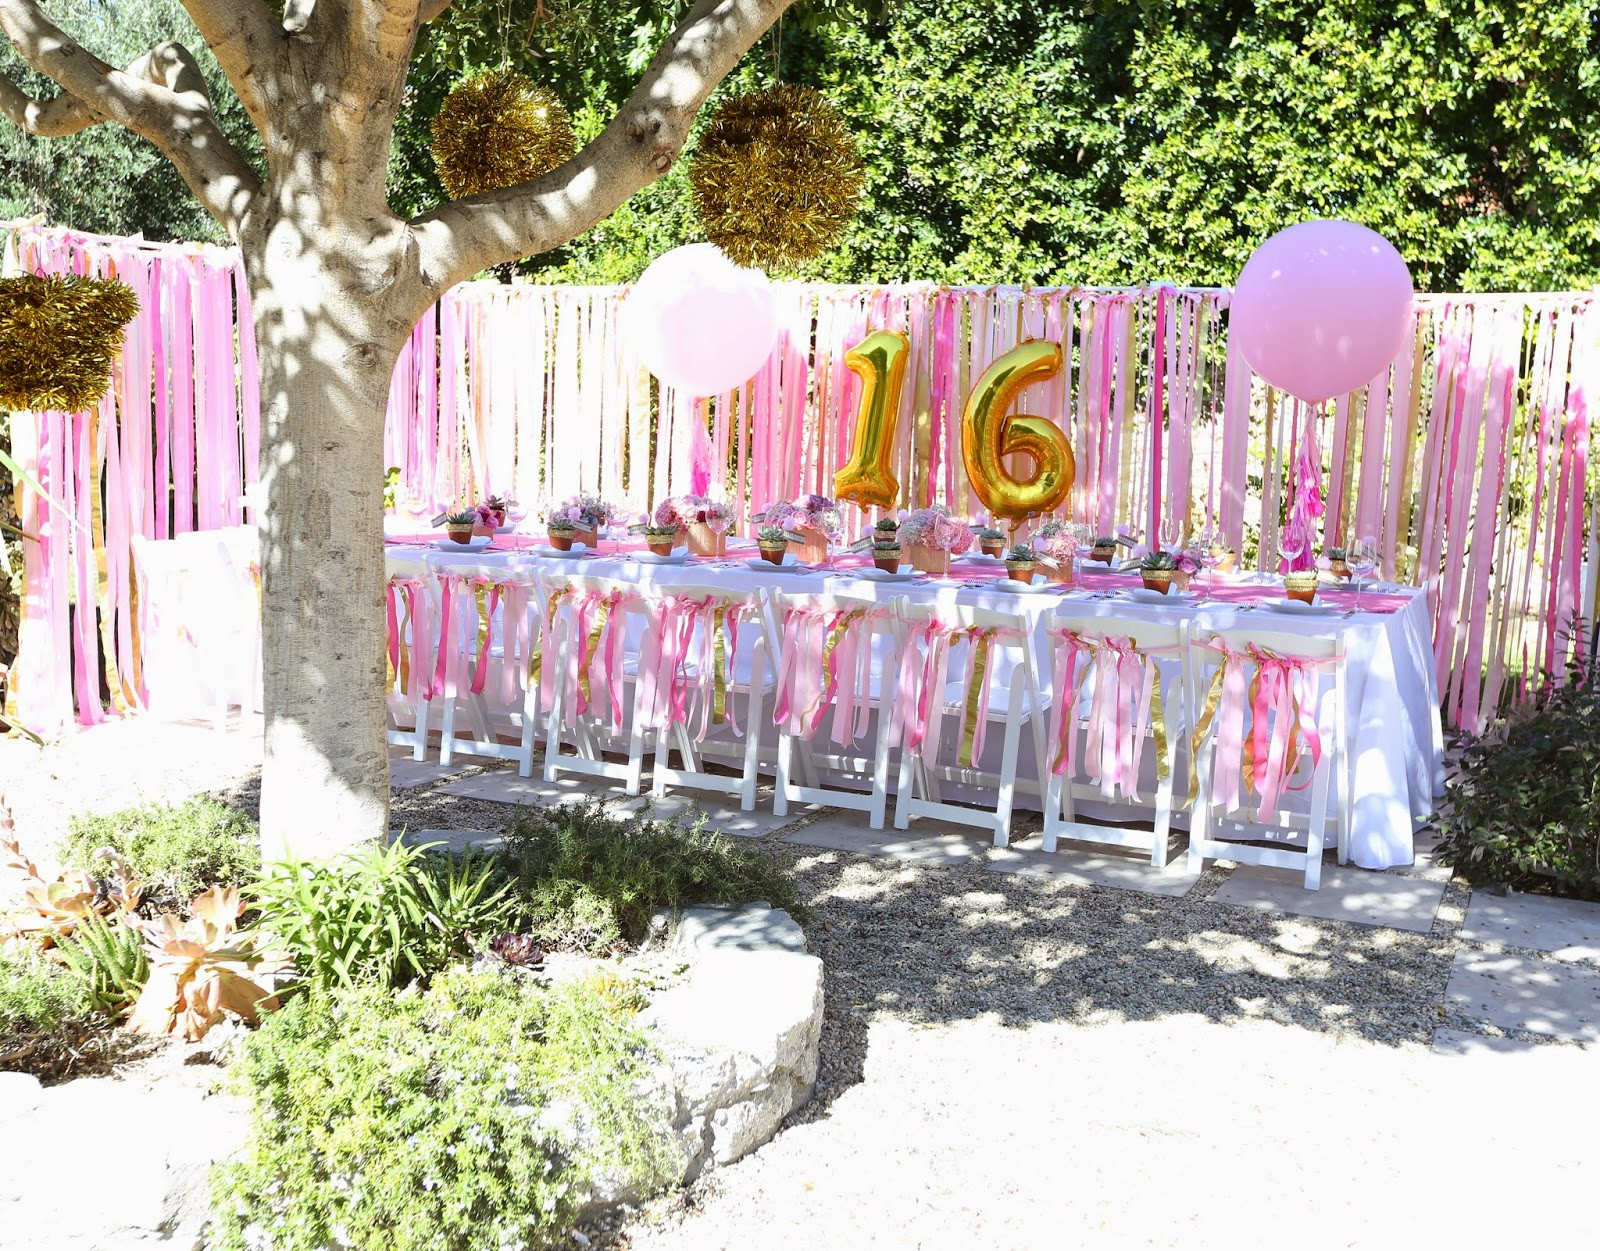 Backyard Sweet Sixteen Party Ideas  the COOP SWEET 16 Party at Home